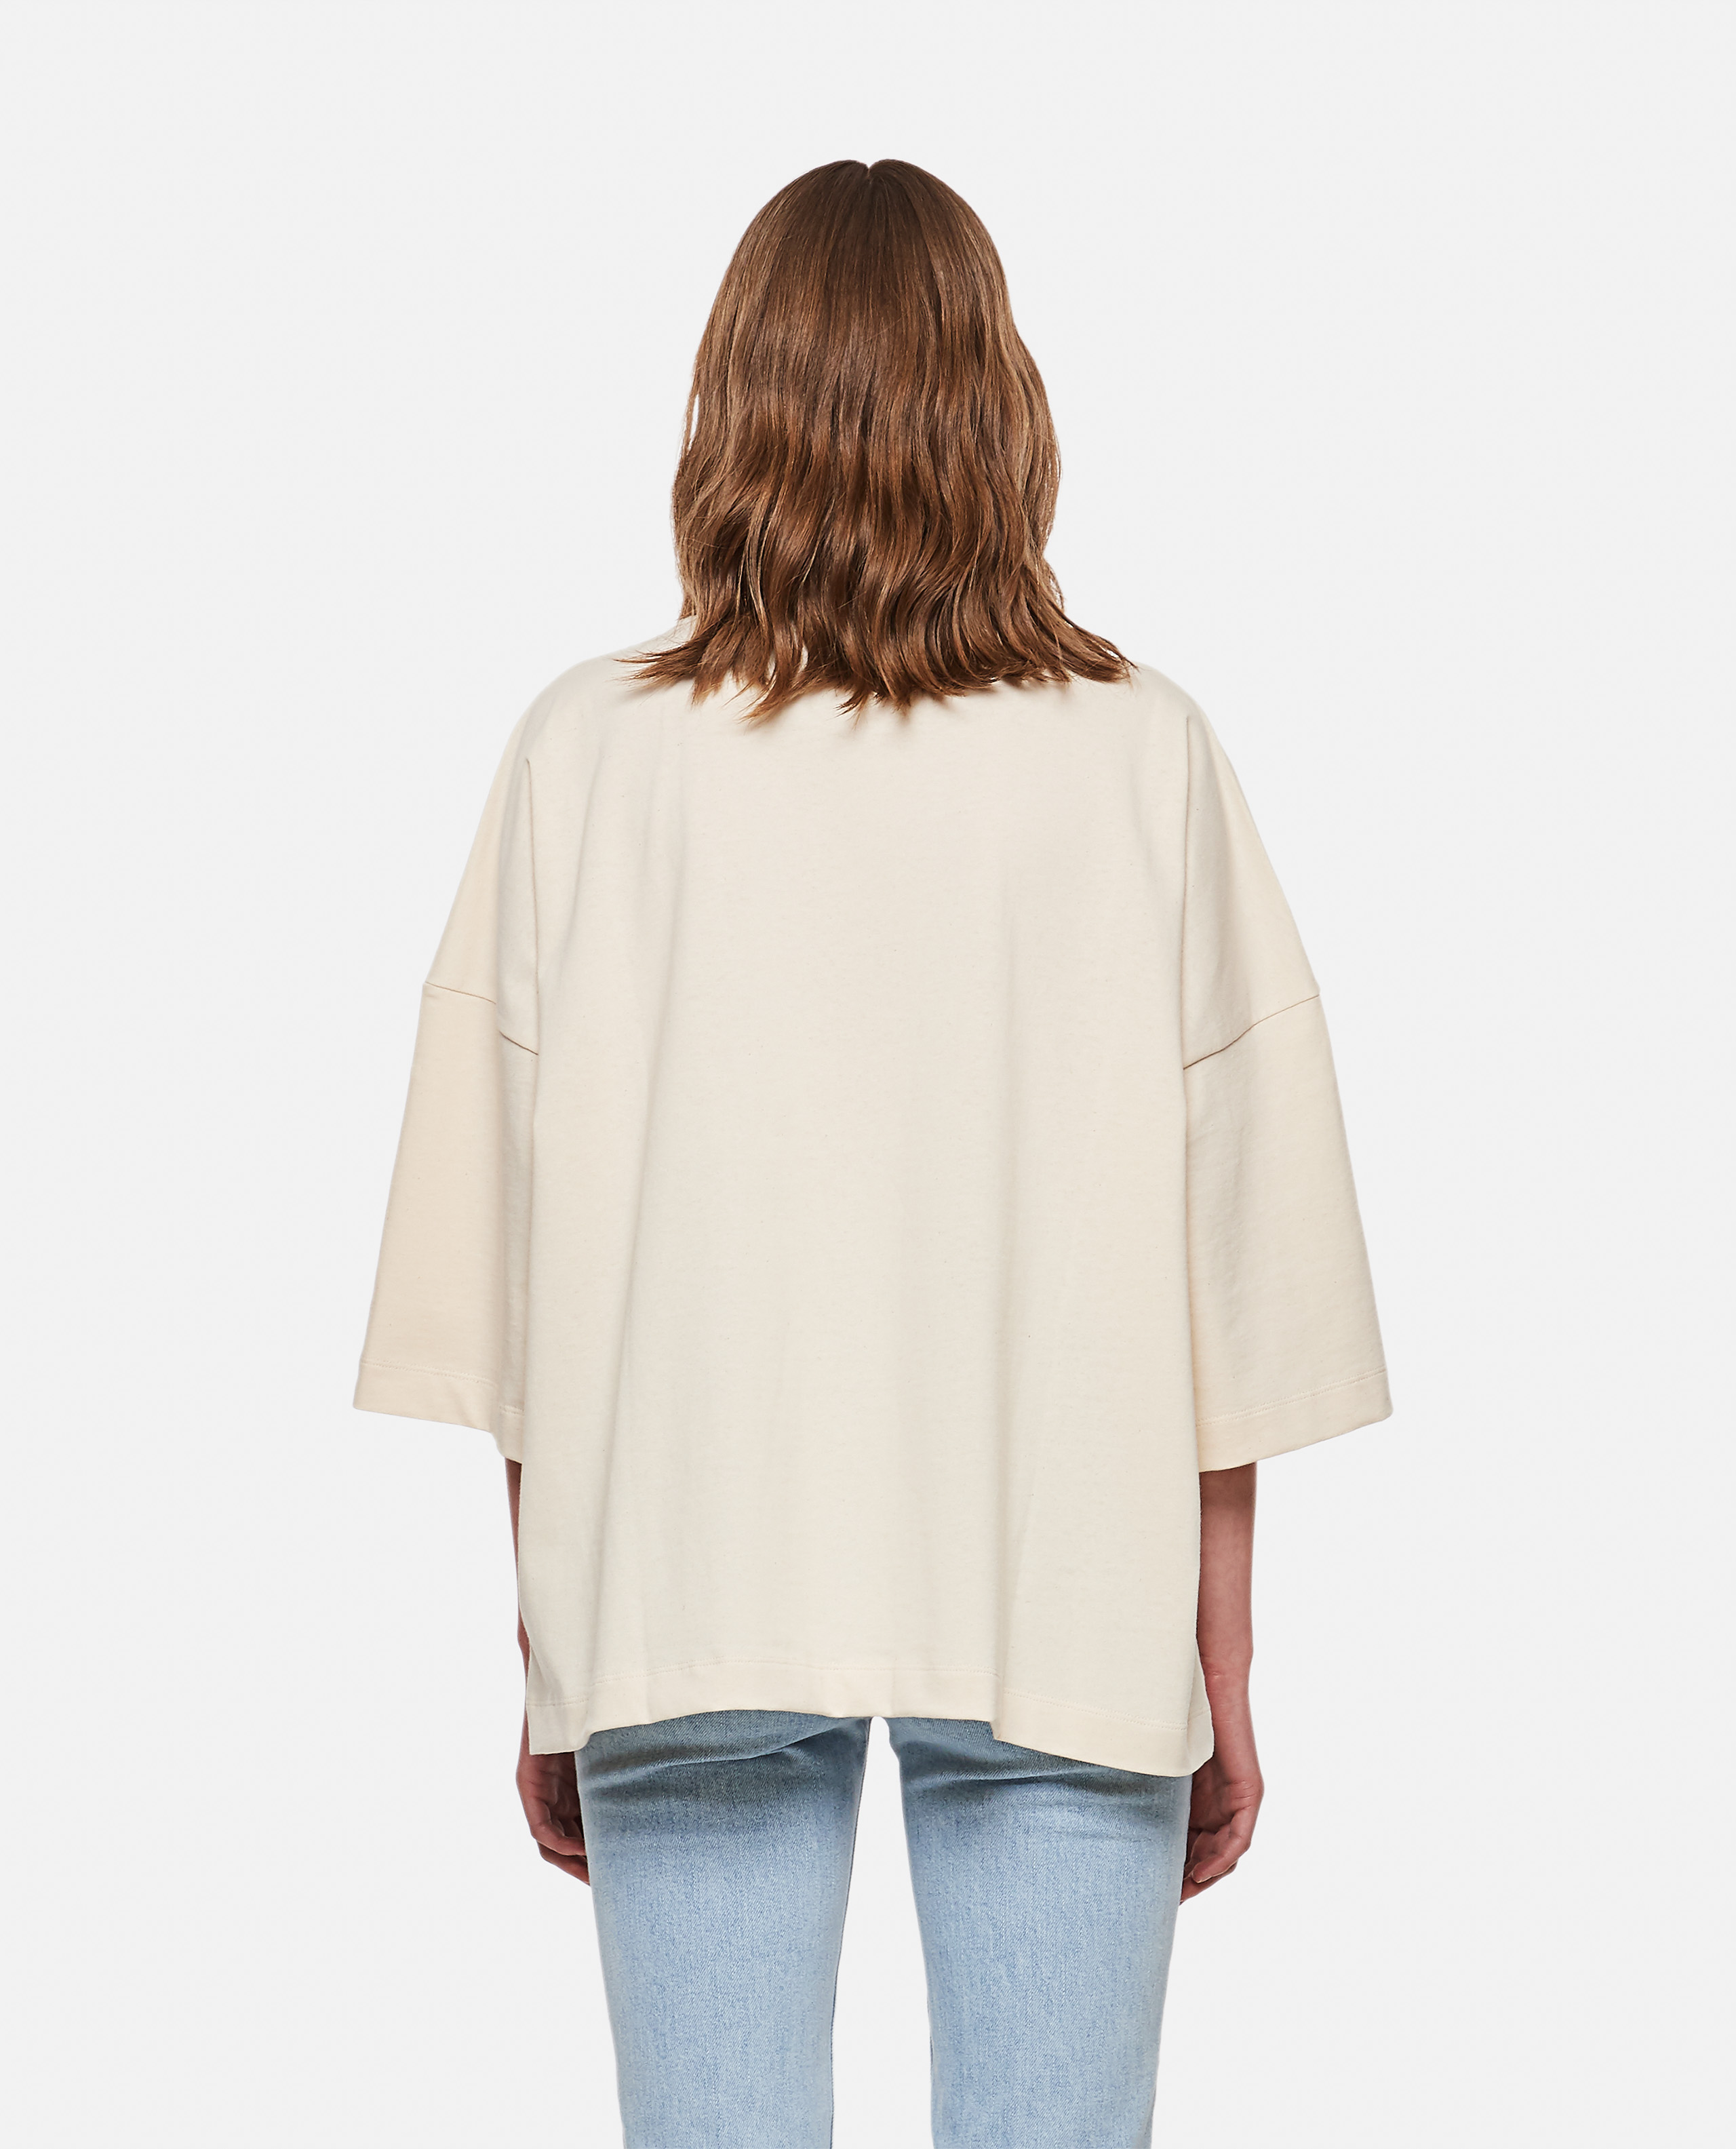 JW ANDERSON Cottons J.W. ANDERSON JW ANDERSON X OSCAR WILDE PRINTED T-SHIRT